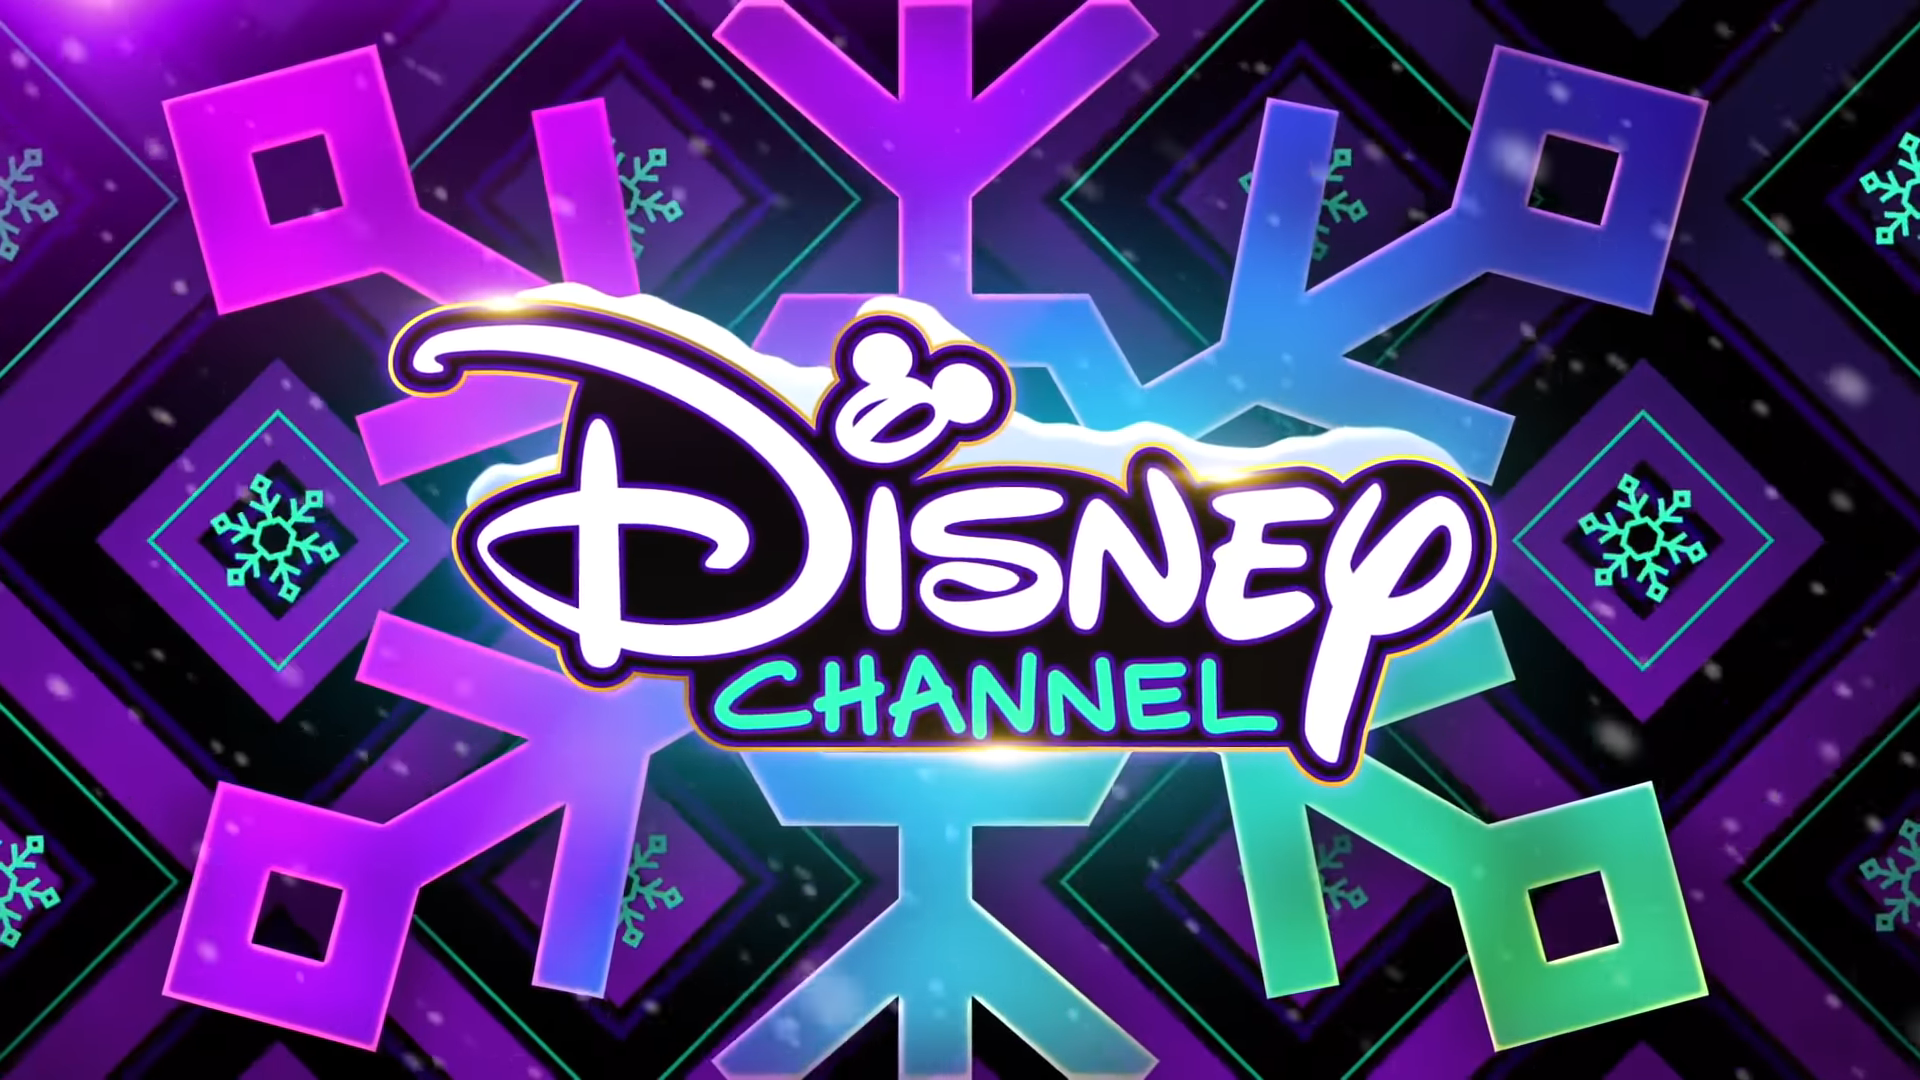 Disney Channel's 25 Days of Christmas